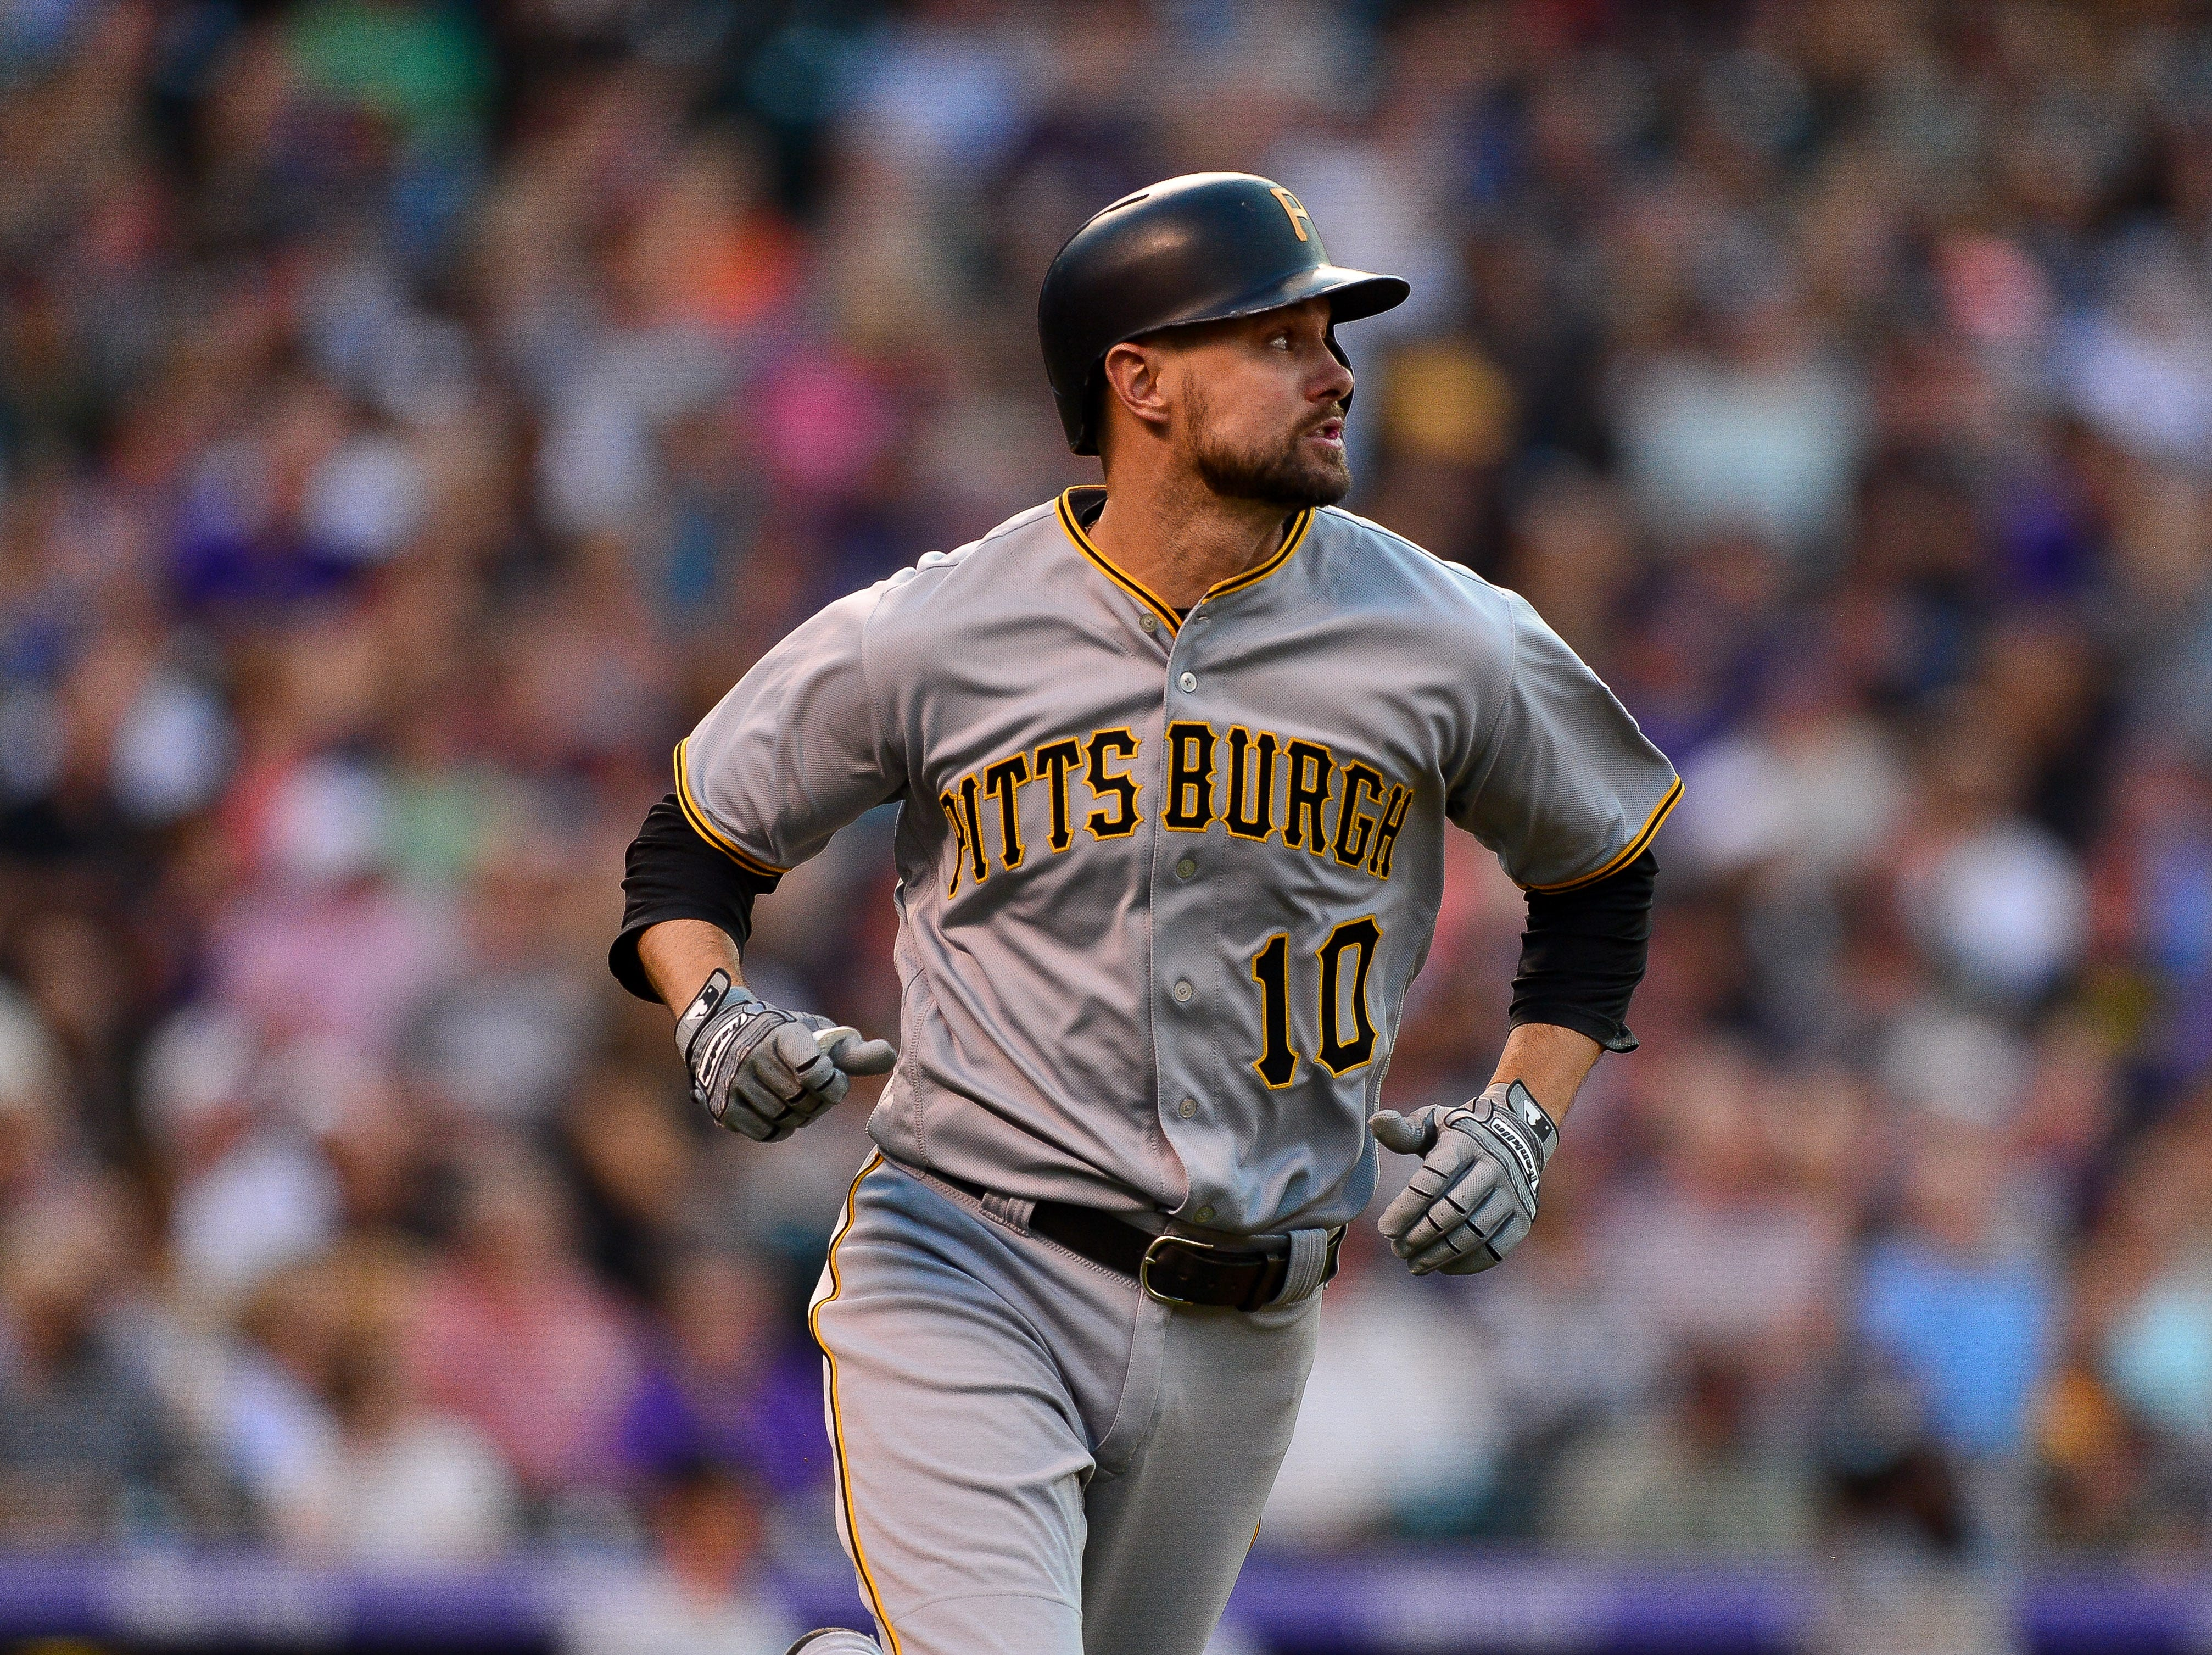 Jordy Mercer of the Pittsburgh Pirates watches the flight of a fourth inning three run home run hit off of Chad Bettis of the Colorado Rockies during a game at Coors Field on August 7, 2018 in Denver, Colorado.